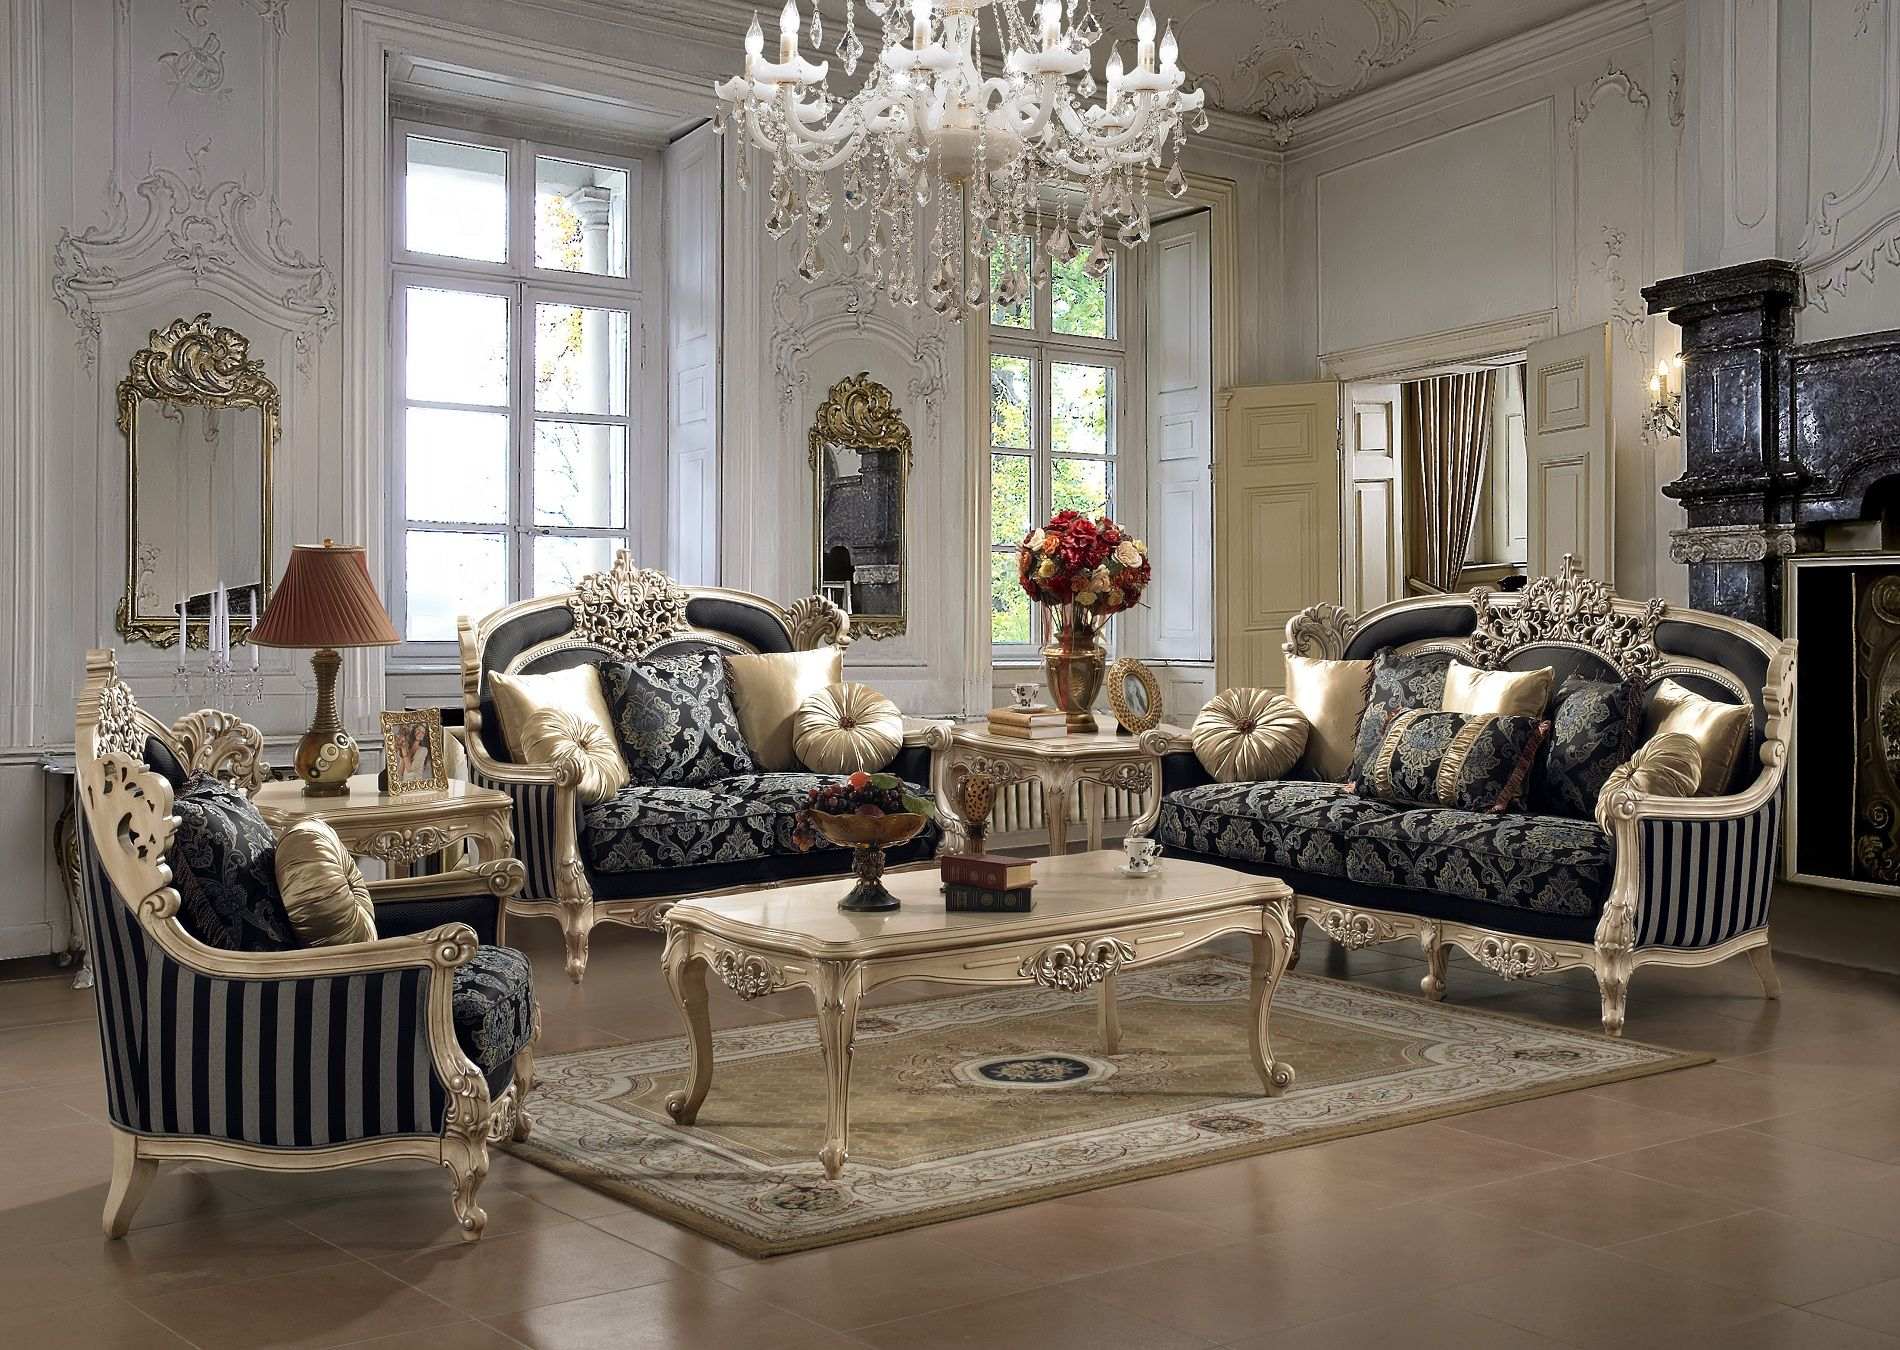 royal style 3 piece living room sofa set with accent pillows